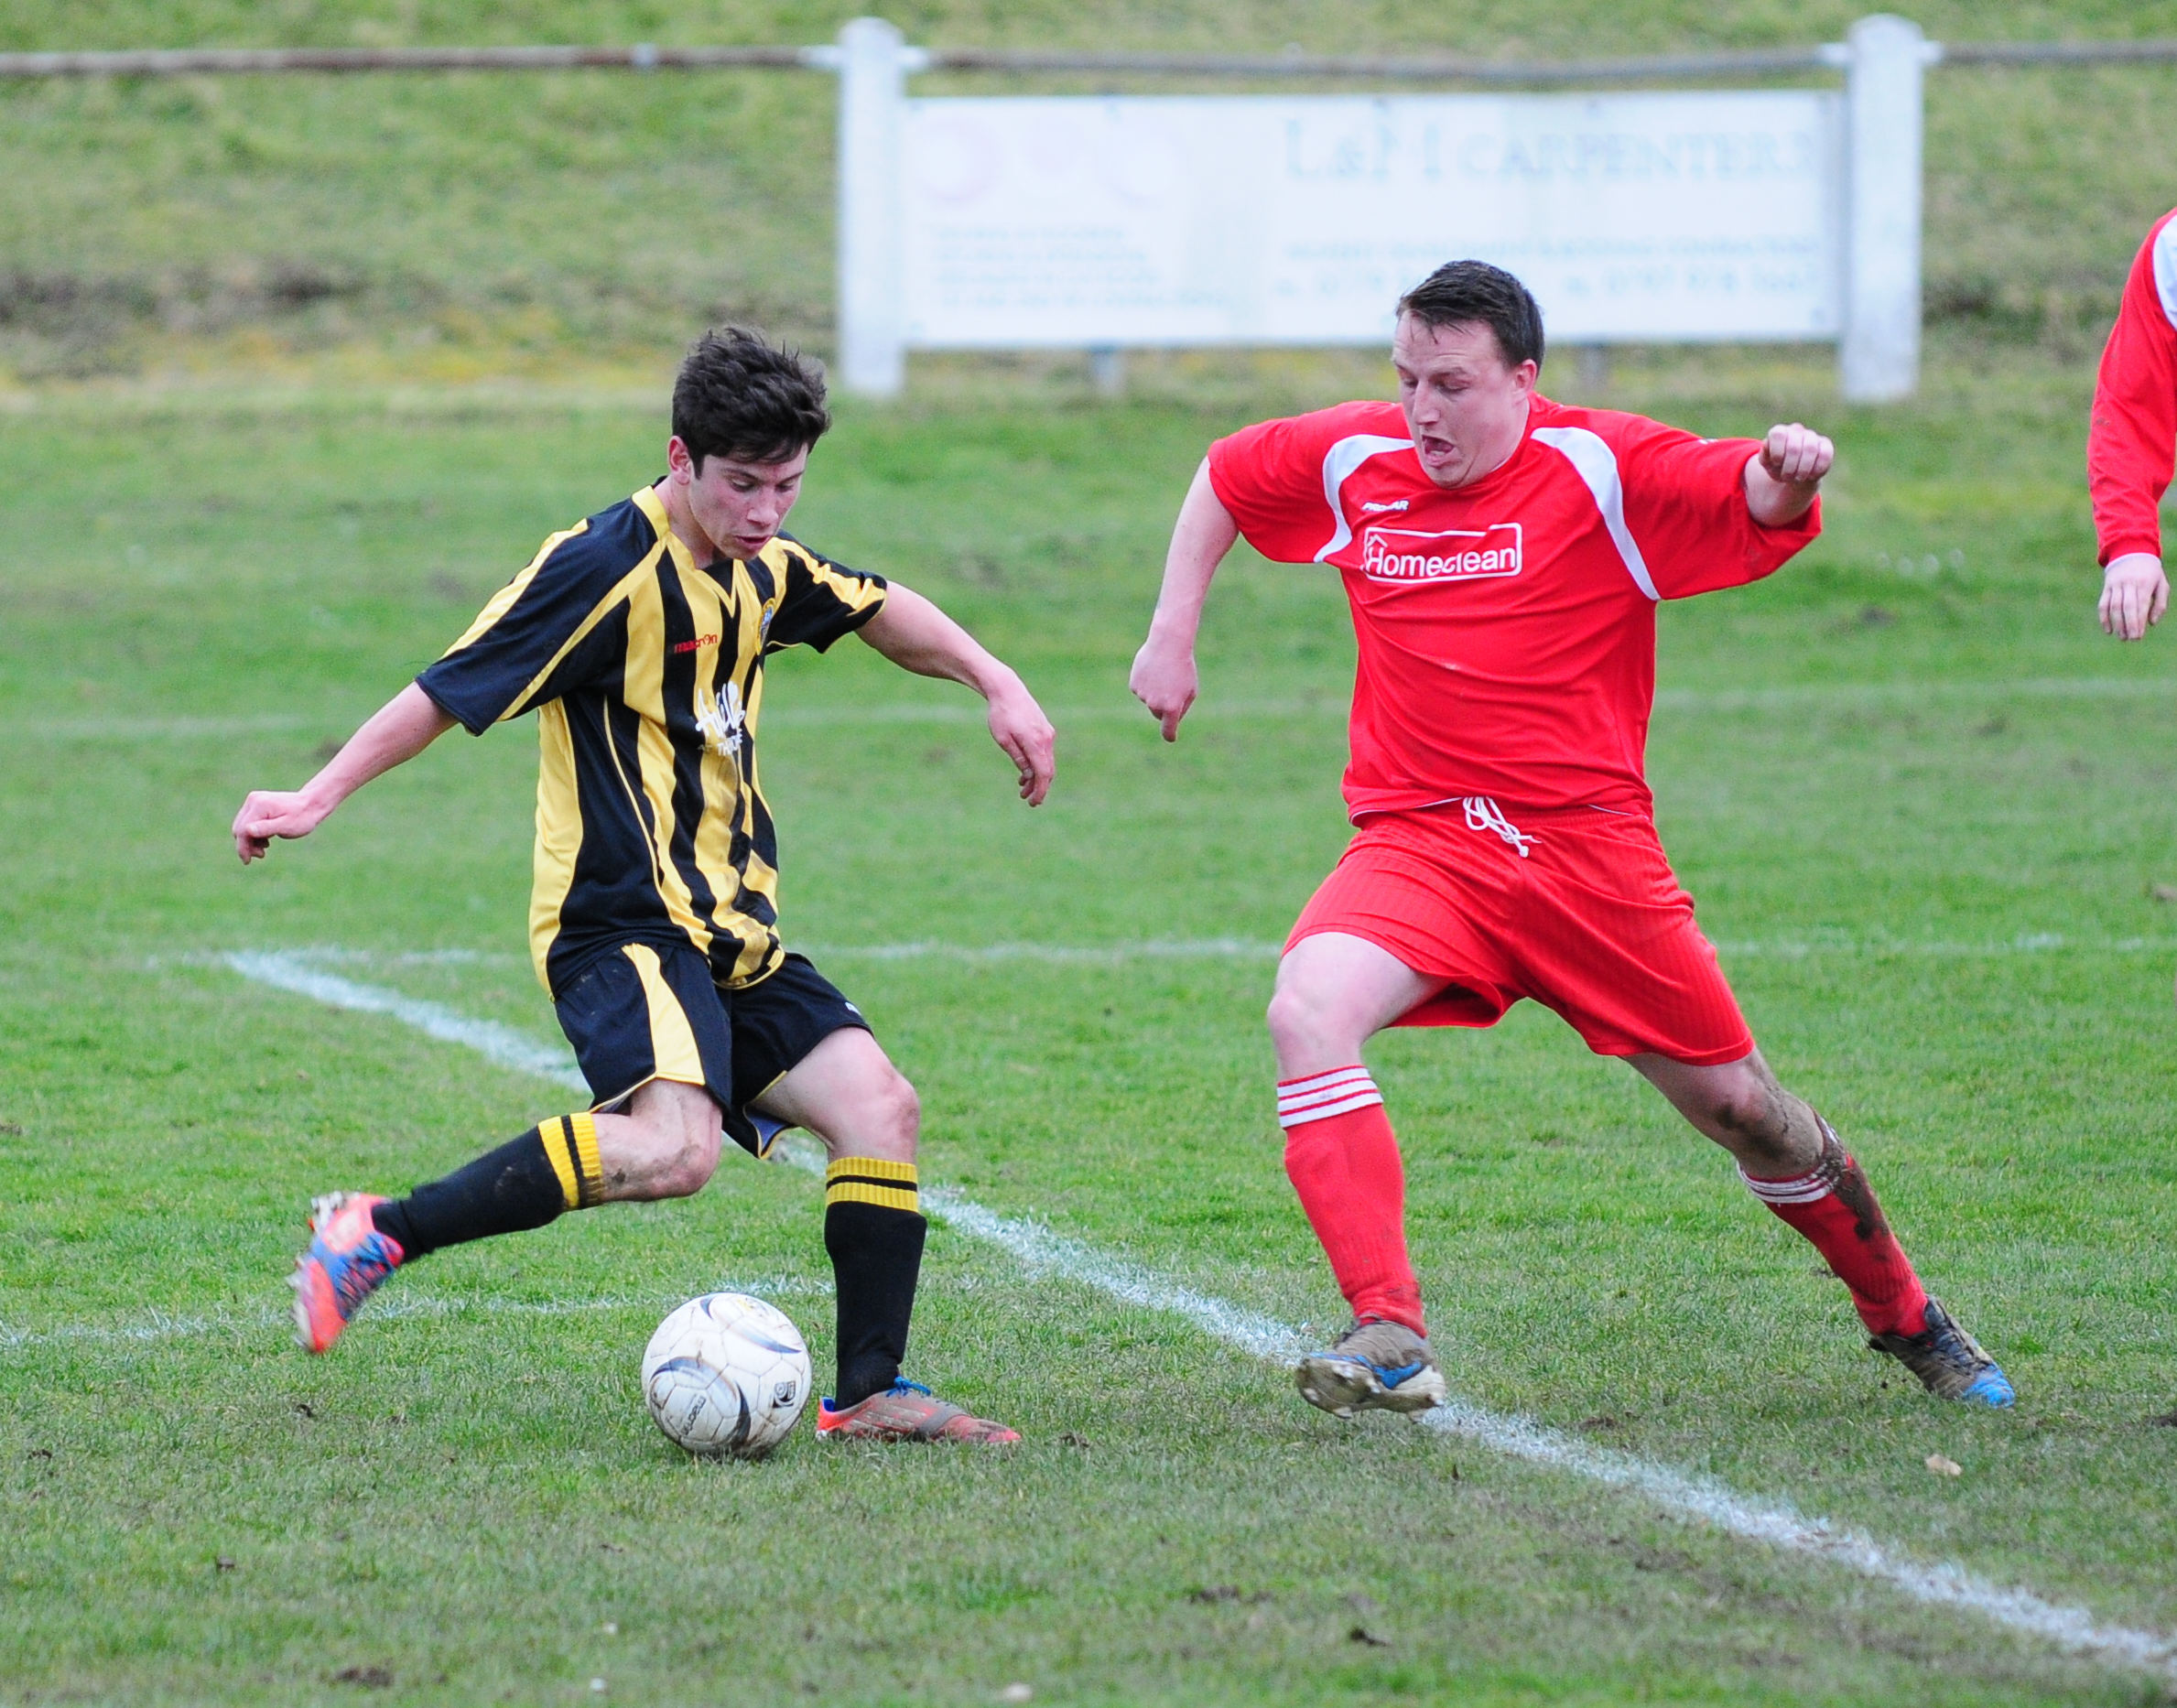 Port's Kyle Frasier takes a shot from the edge of the box. Picture: Phil Ruberry